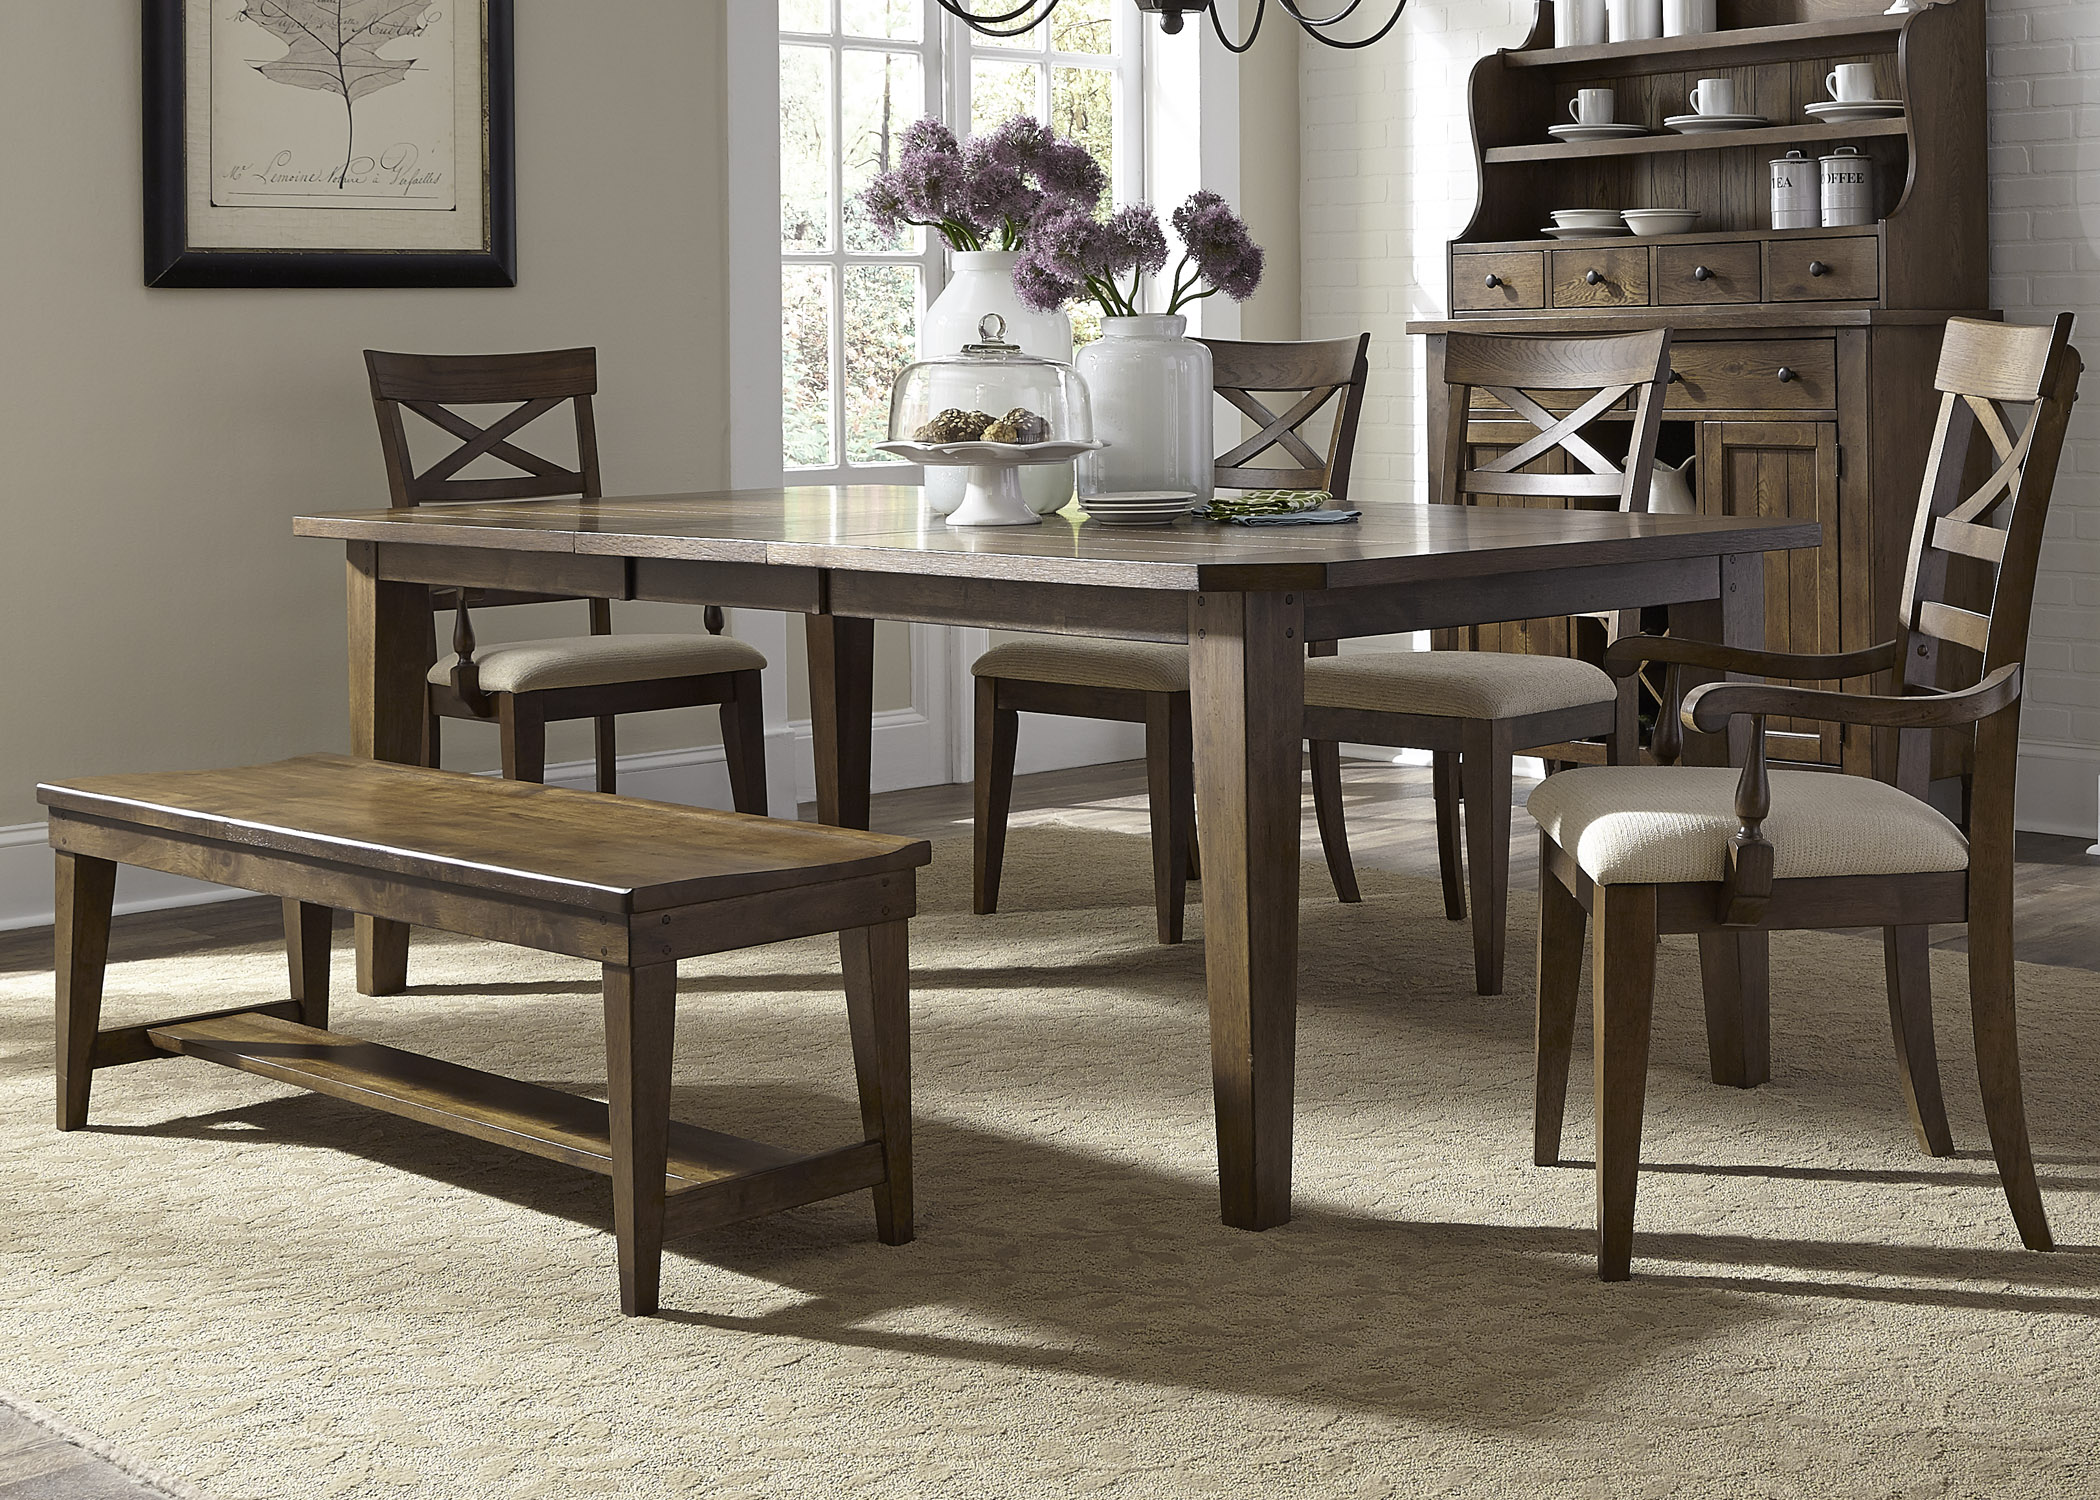 Liberty Furniture Hearthstone 6 Piece Rectangular Table Set  - Item Number: 382-DR-O6RLS